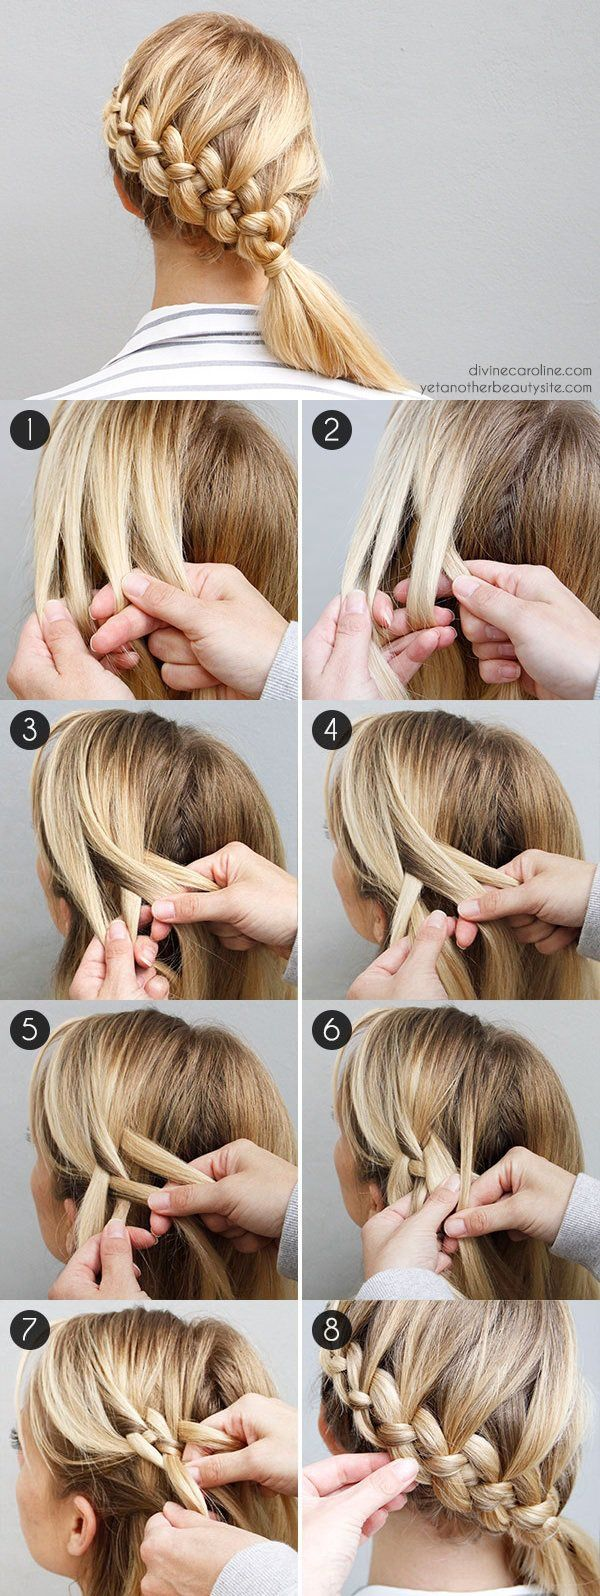 Women hairstyles plus size products the very hairs of your head